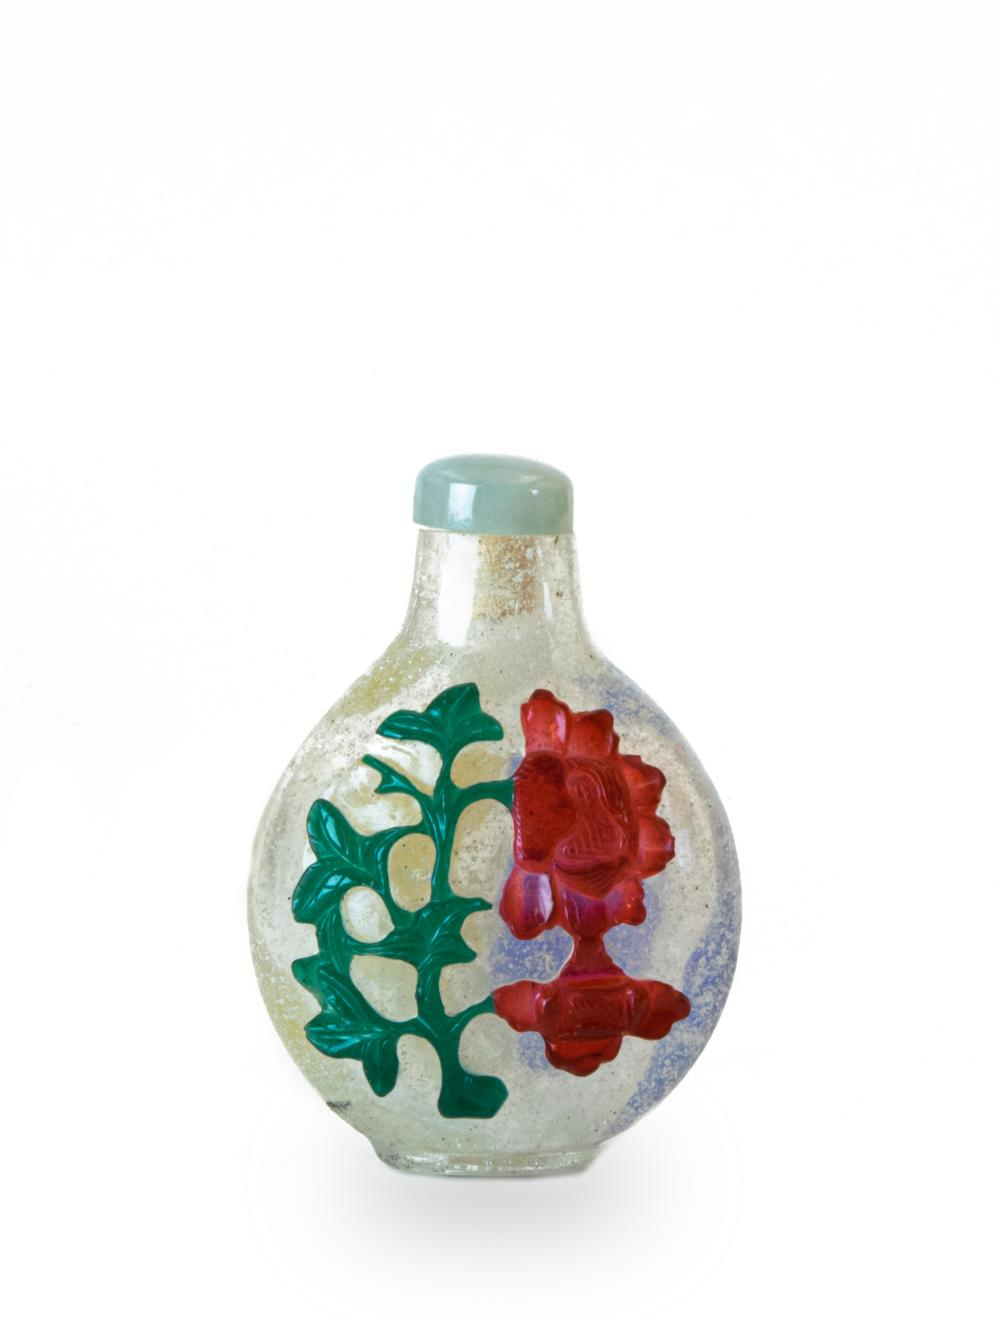 CHINESE PEKING GLASS 4 COLOR SNUFF BOTTLE, 19TH CENTURY